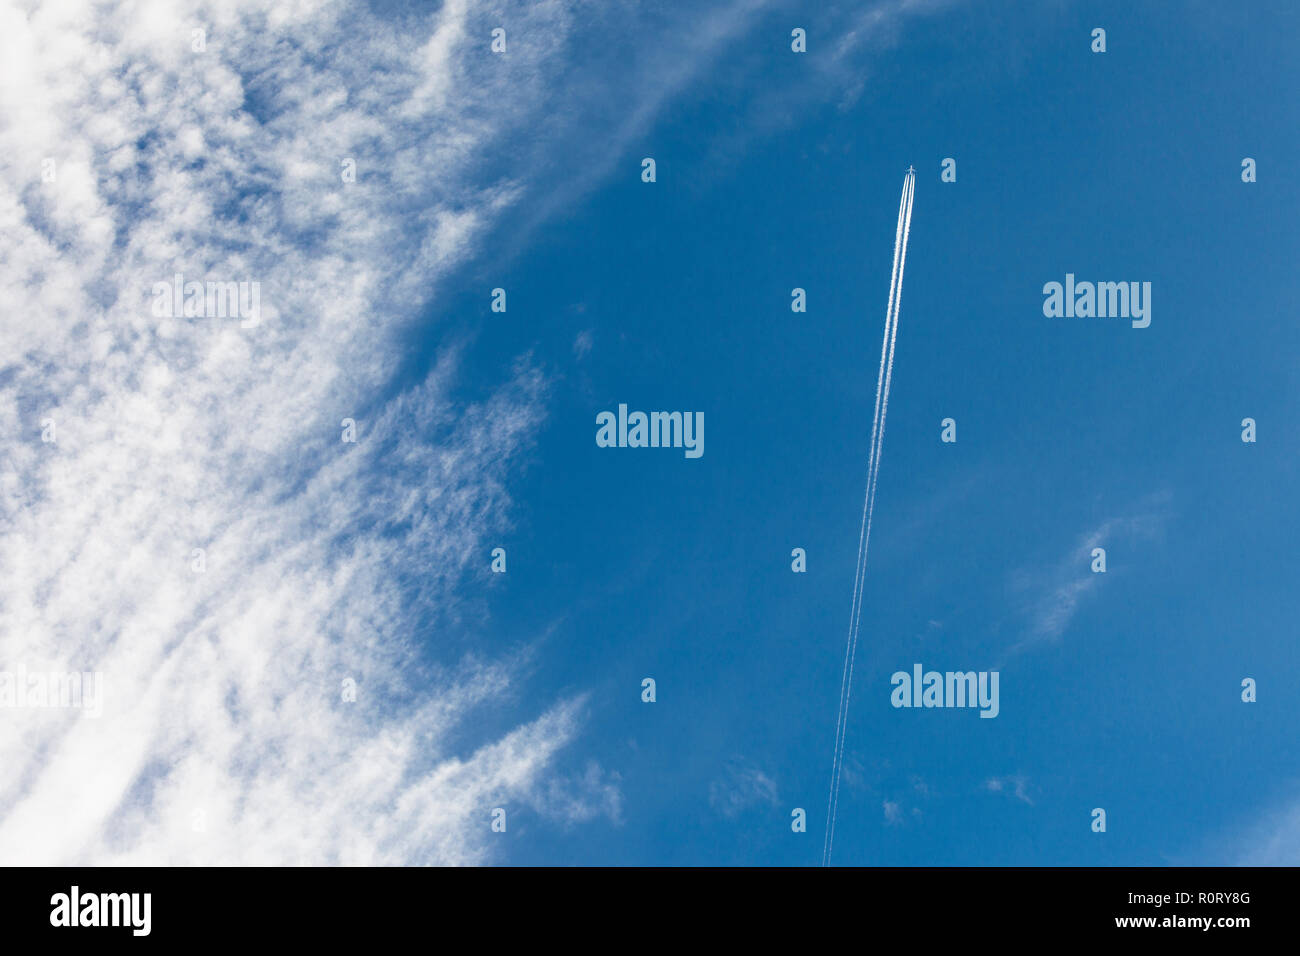 A passenger airplane leaving a vapour trail - Stock Image